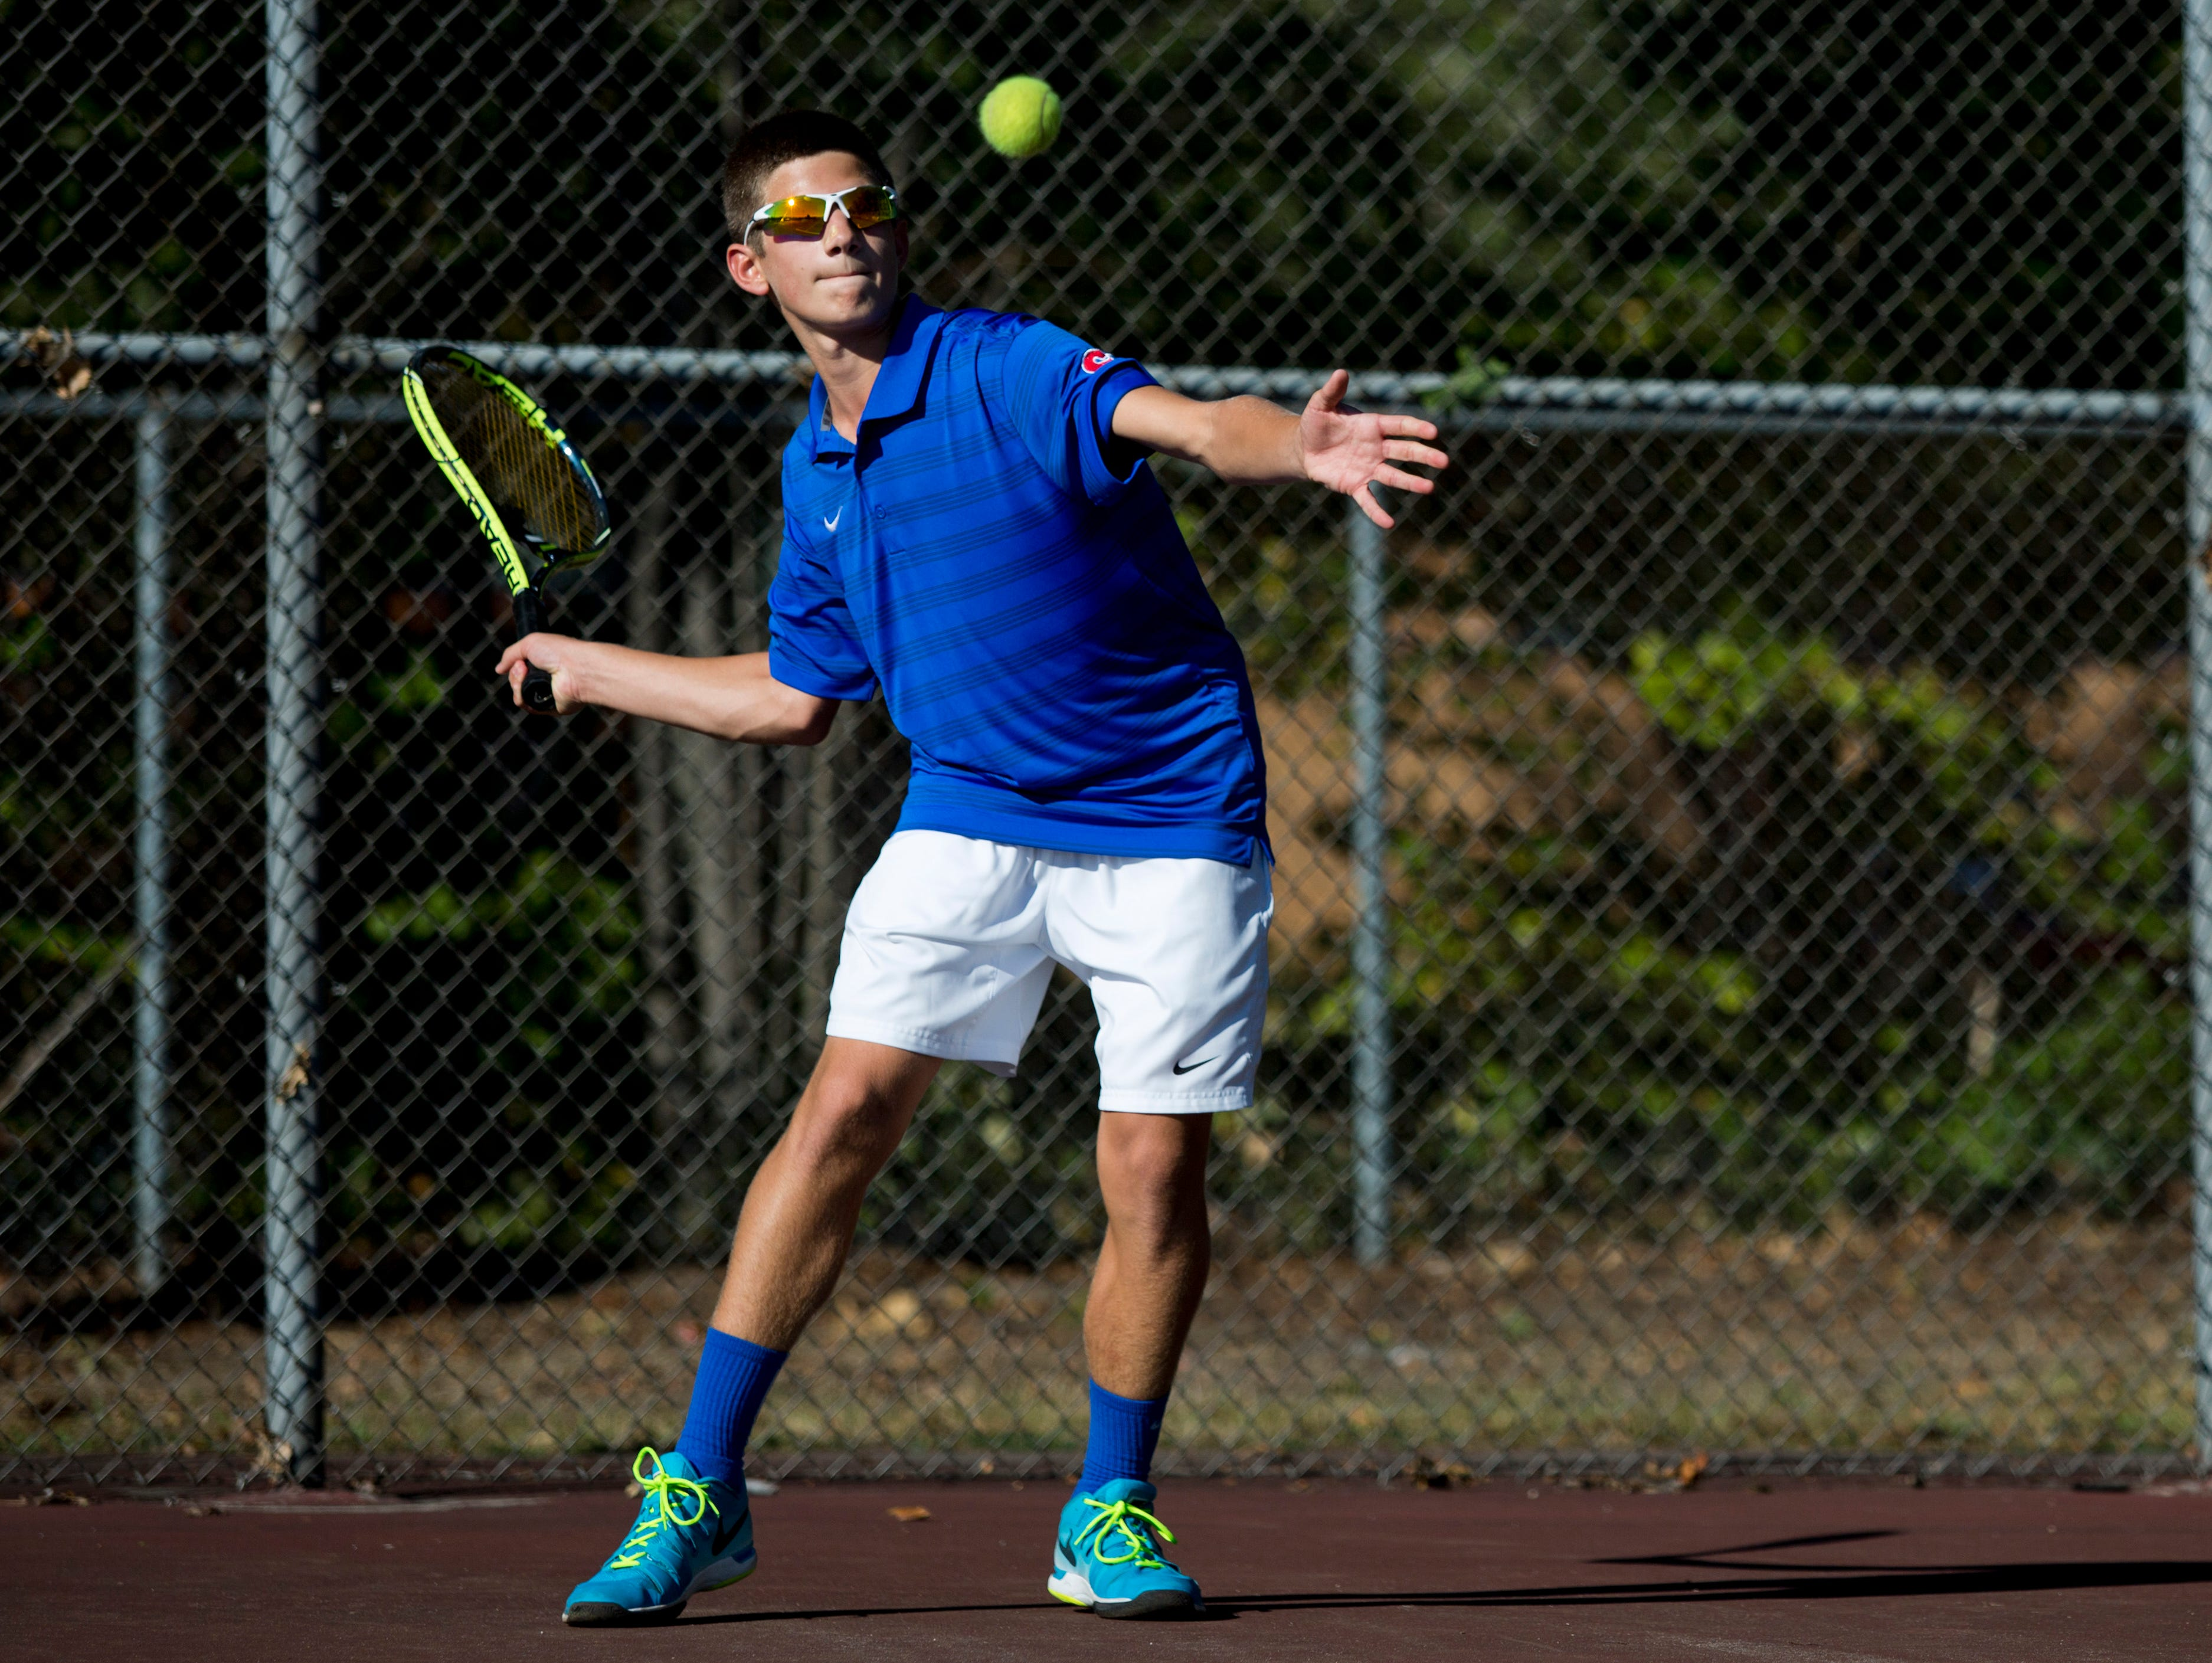 St. Clair sophomore Troy Distelrath returns the ball during a tennis match Wednesday, September 23, 2015 at Port Huron Northern High School.